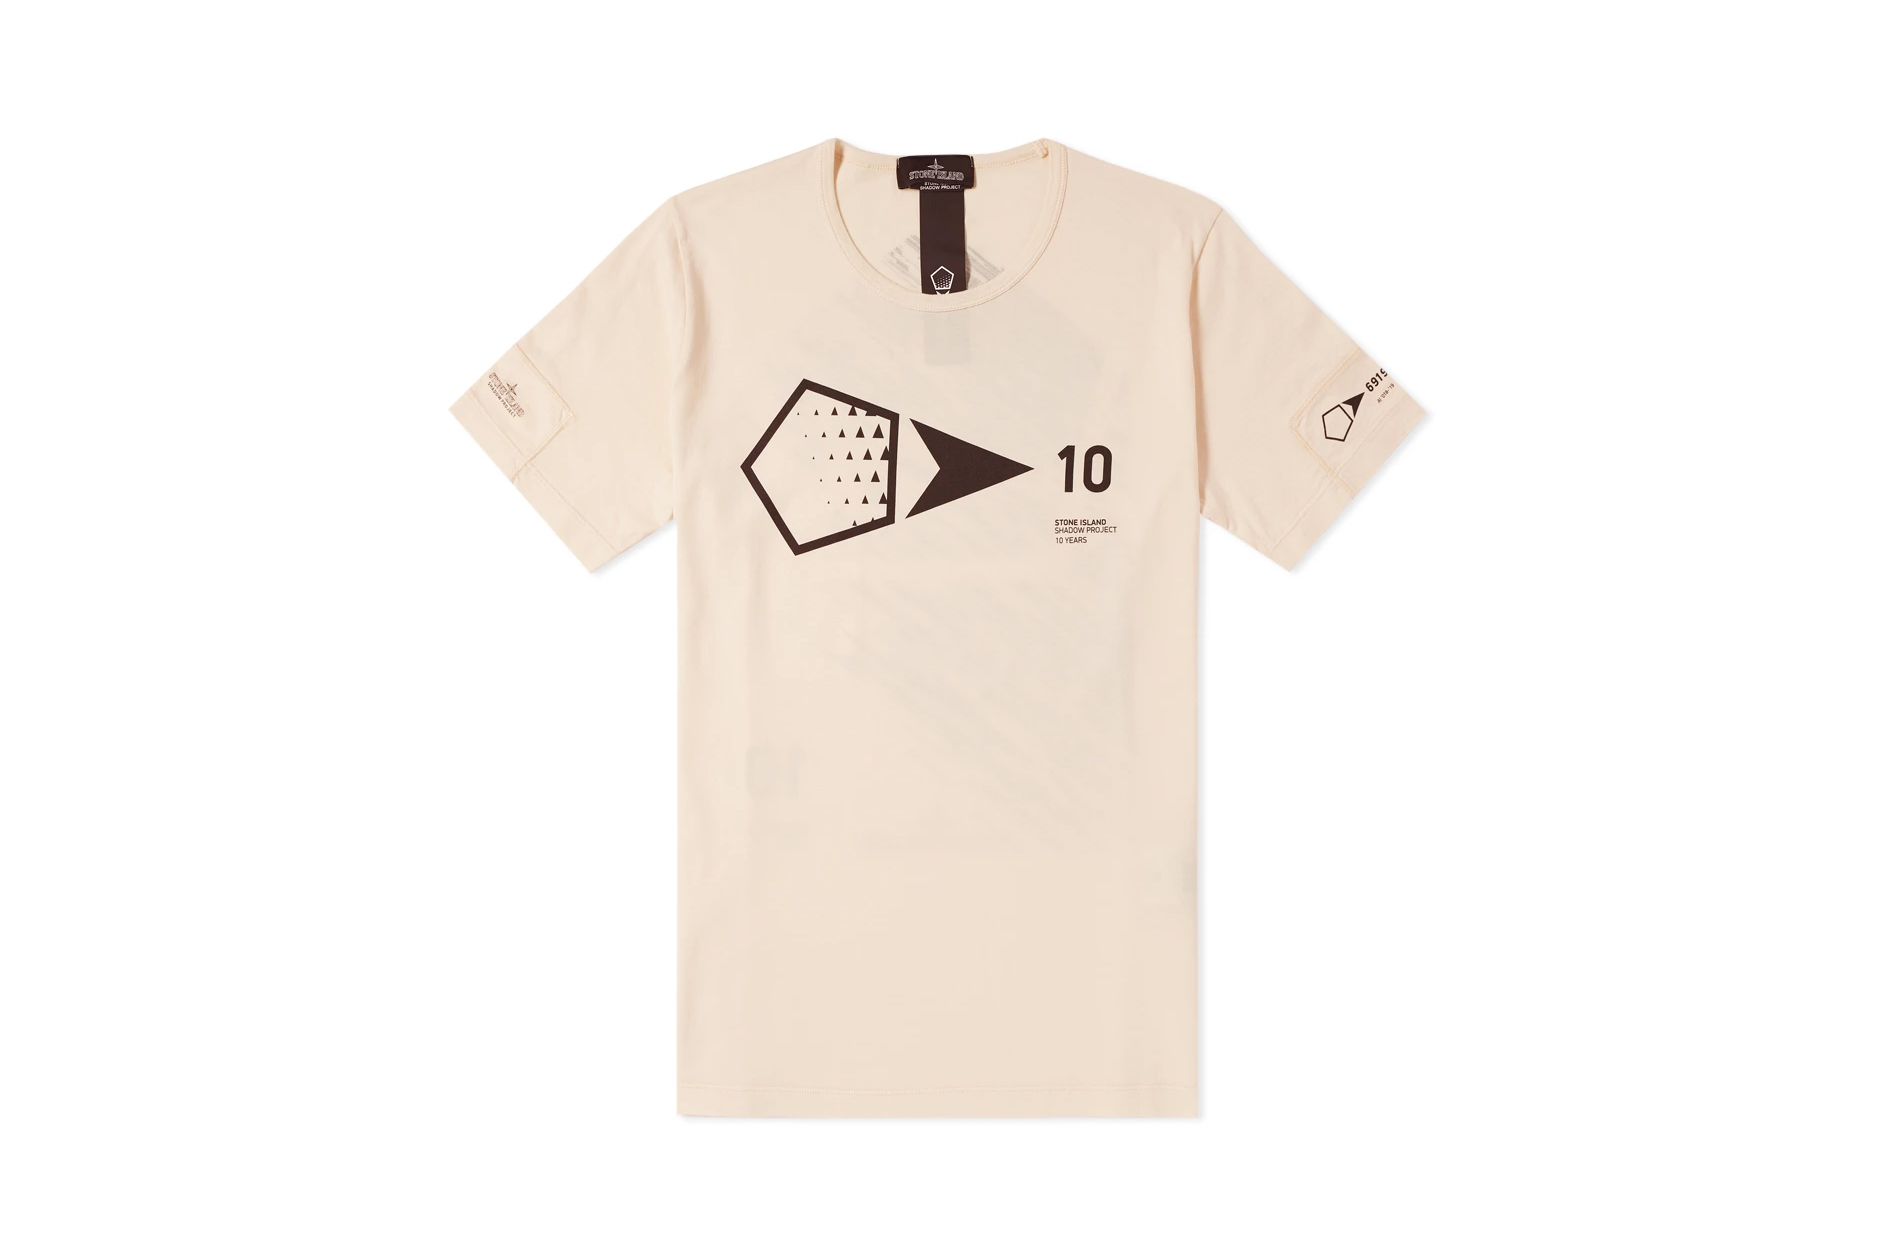 Stone Island Shadow Project 10th Anniversary Collection T-Shirt Black White Natural Pink